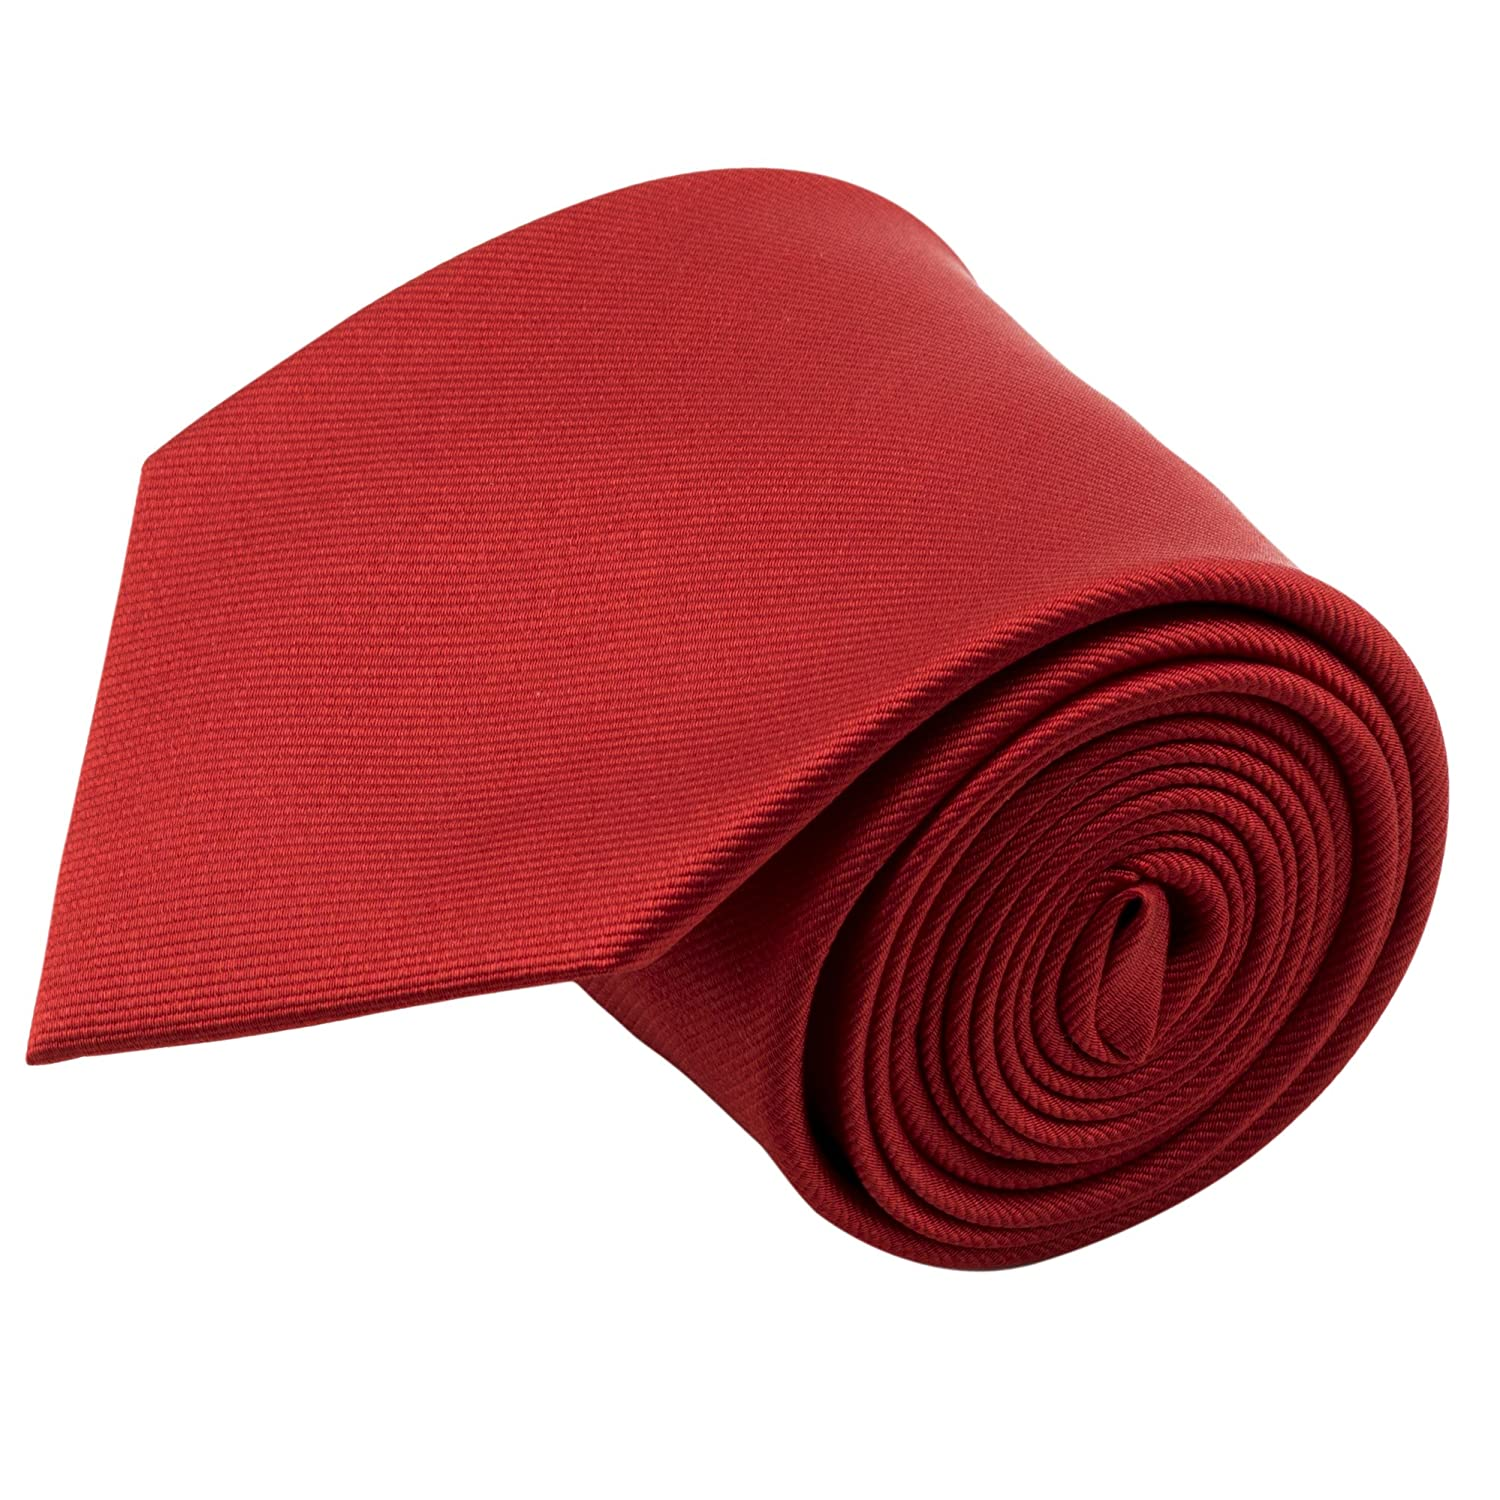 100% Silk Handmade Woven Solid Color Ties for Men Tie Mens Necktie Ties by John William Neckties